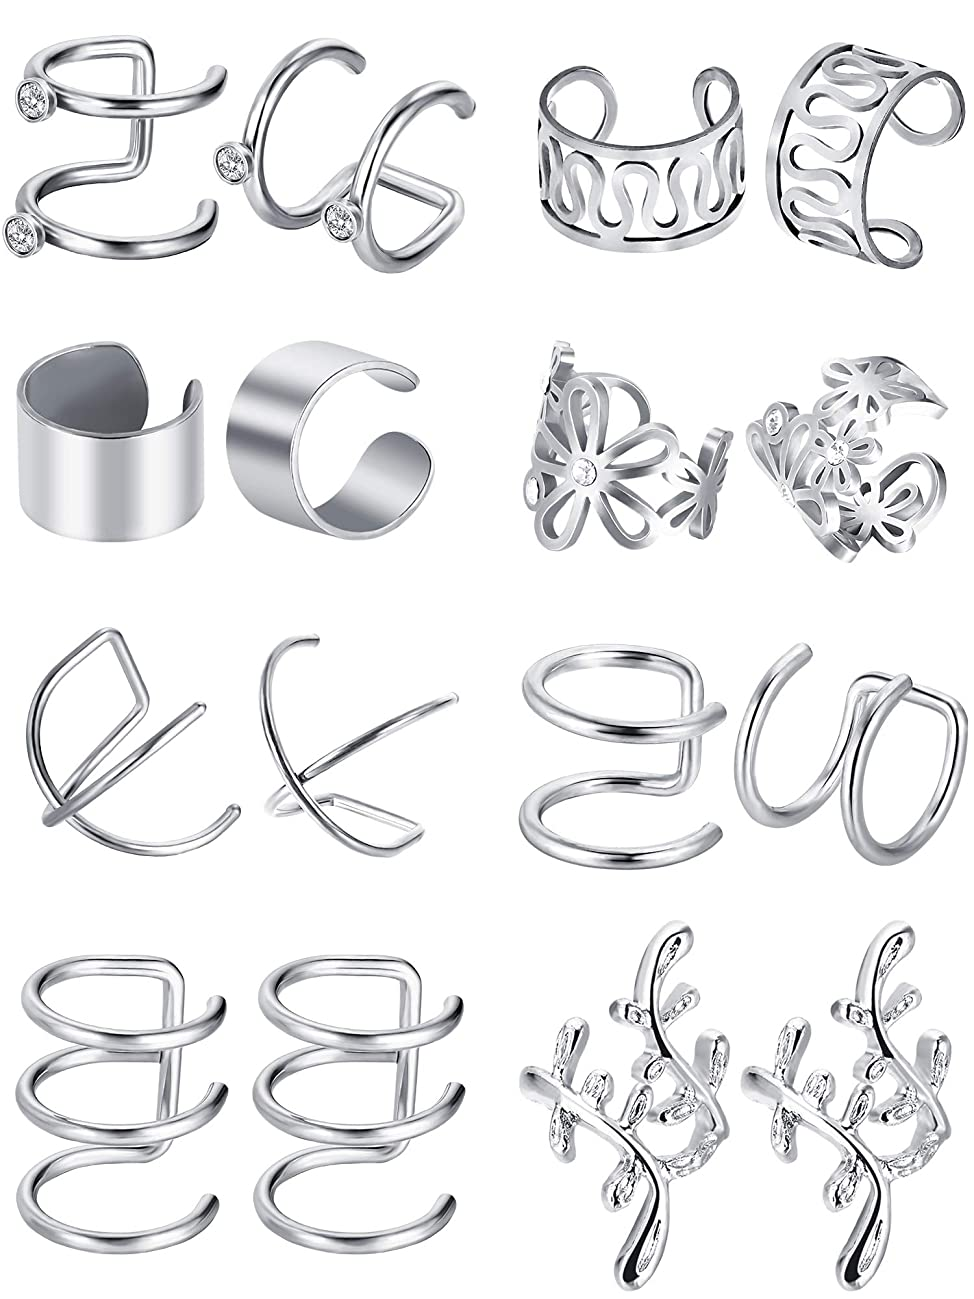 Blulu 8 Pairs Stainless Steel Ear Cuff Non Piercing Clip on Cartilage Earrings for Men Women, 8 Various Styles